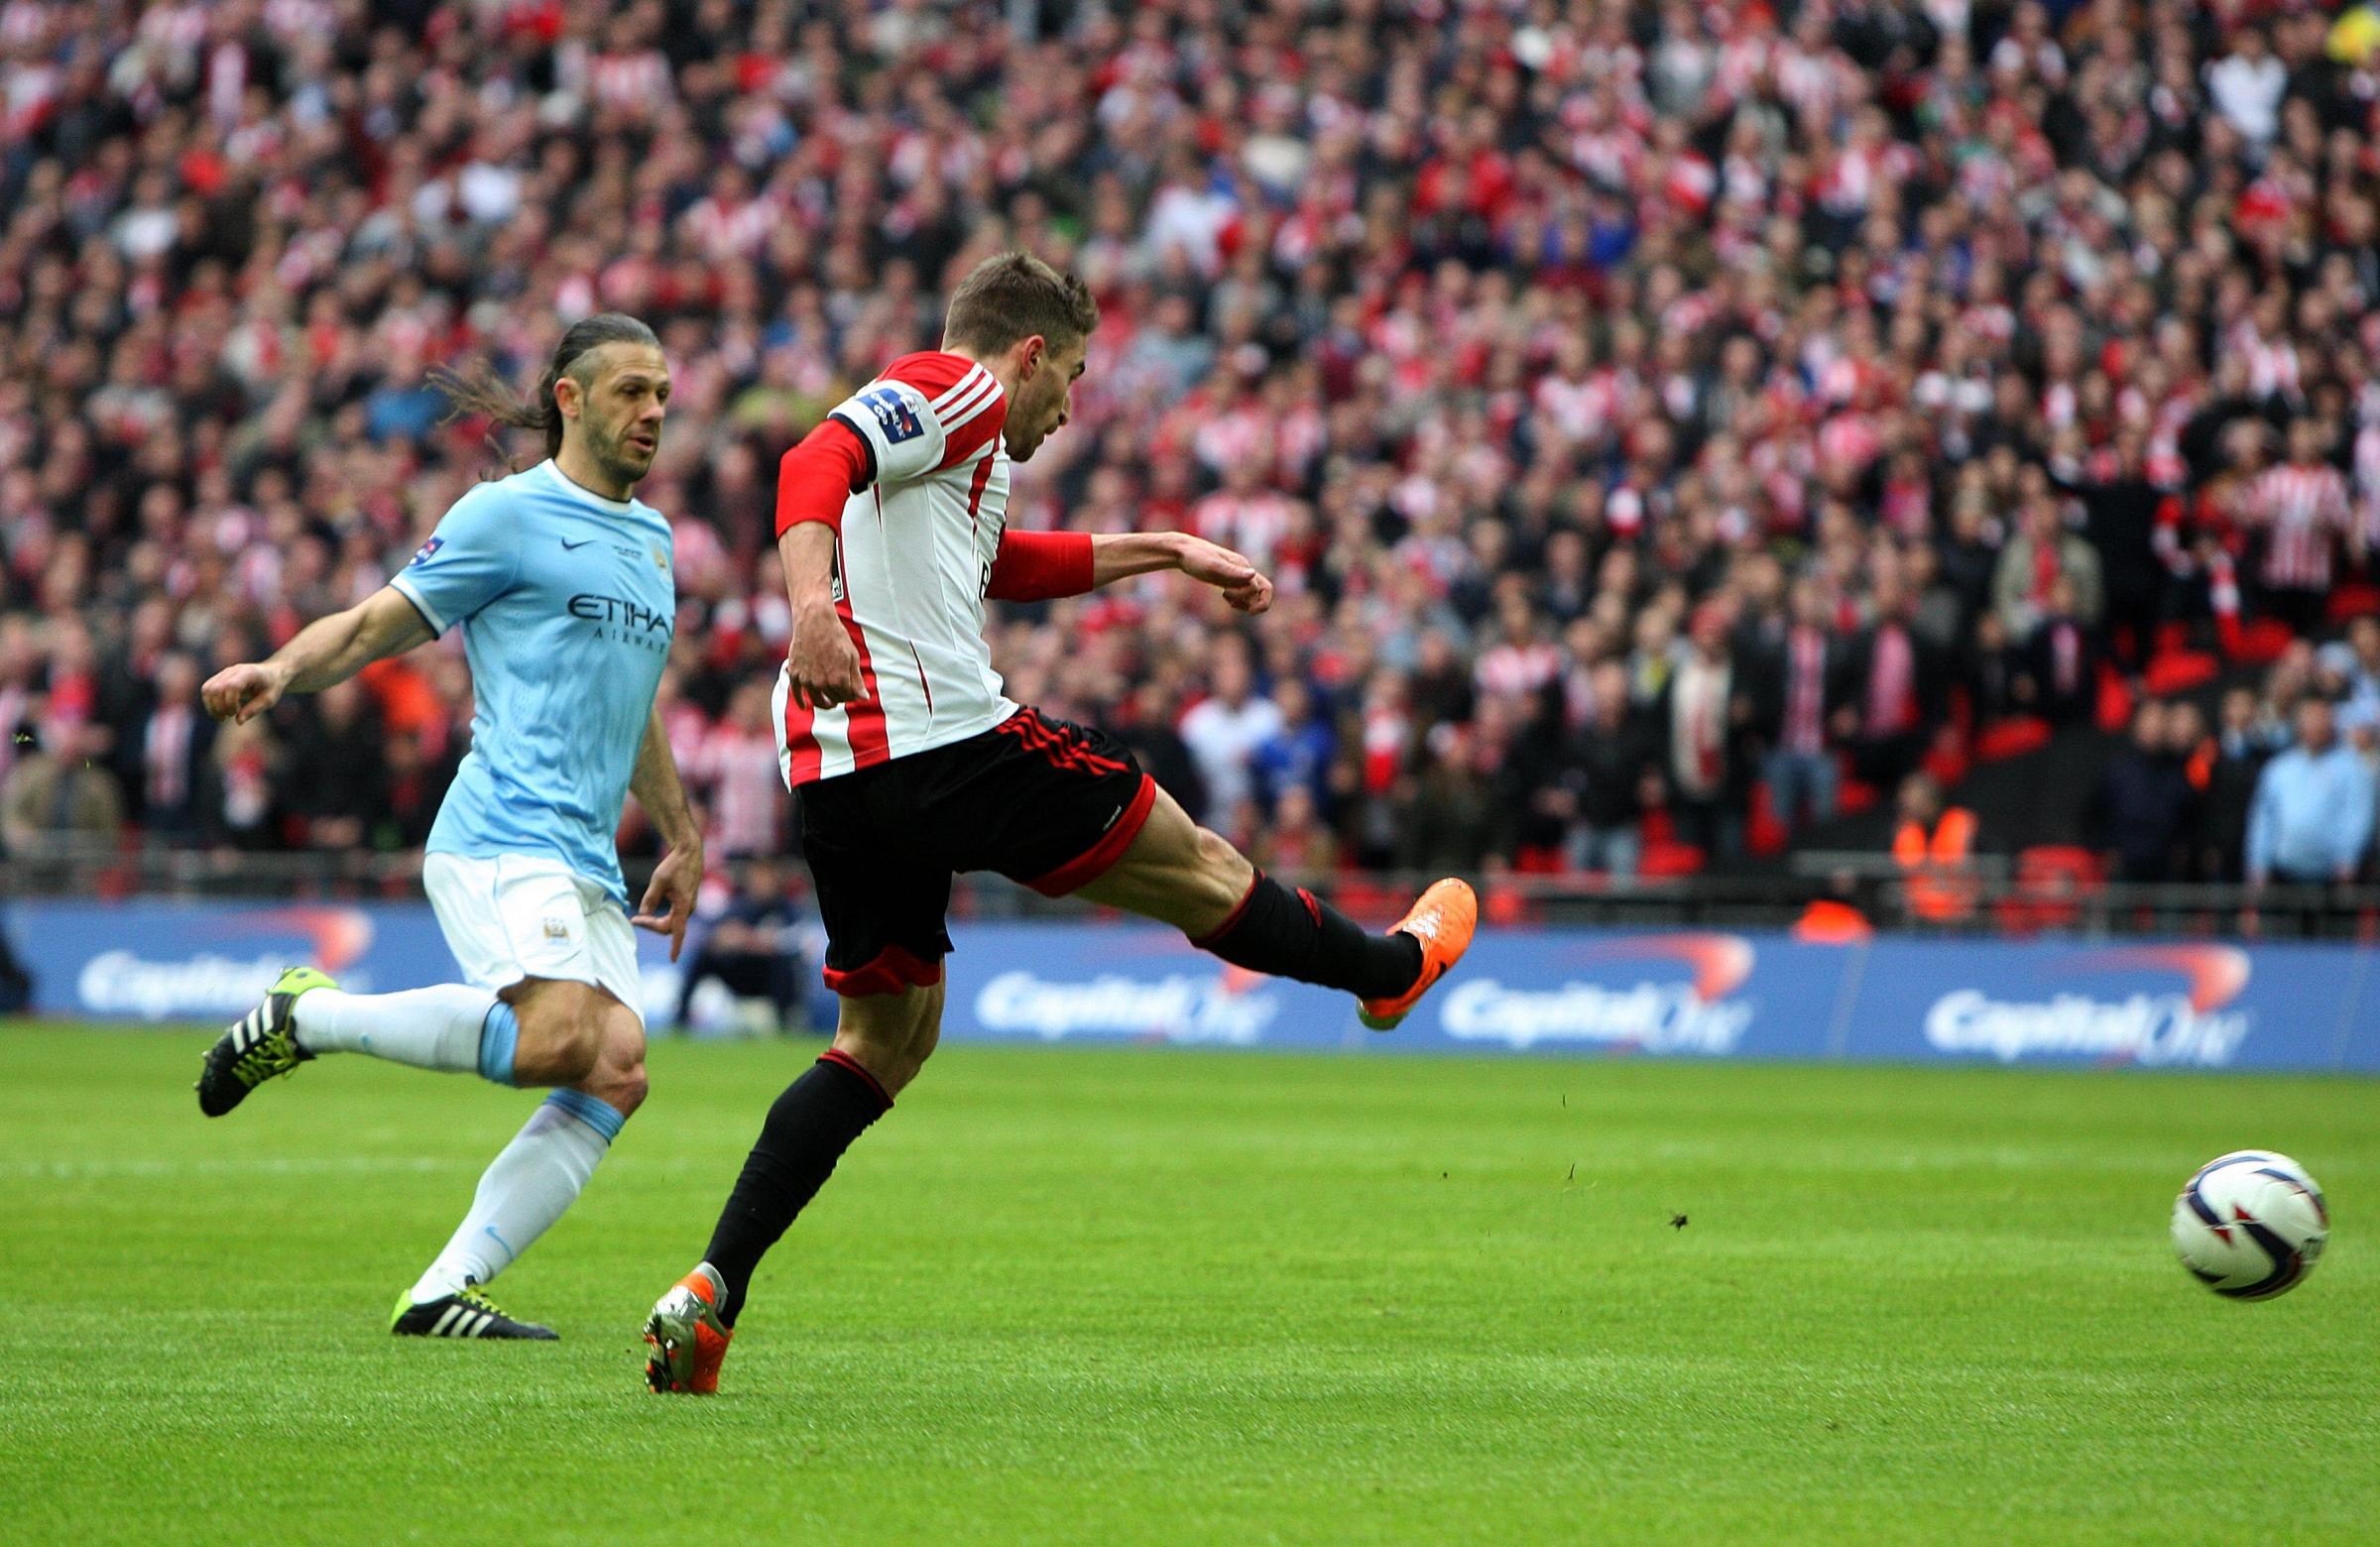 JOYFUL MOMENTS: Fabio Borini fires Sunderland ahead